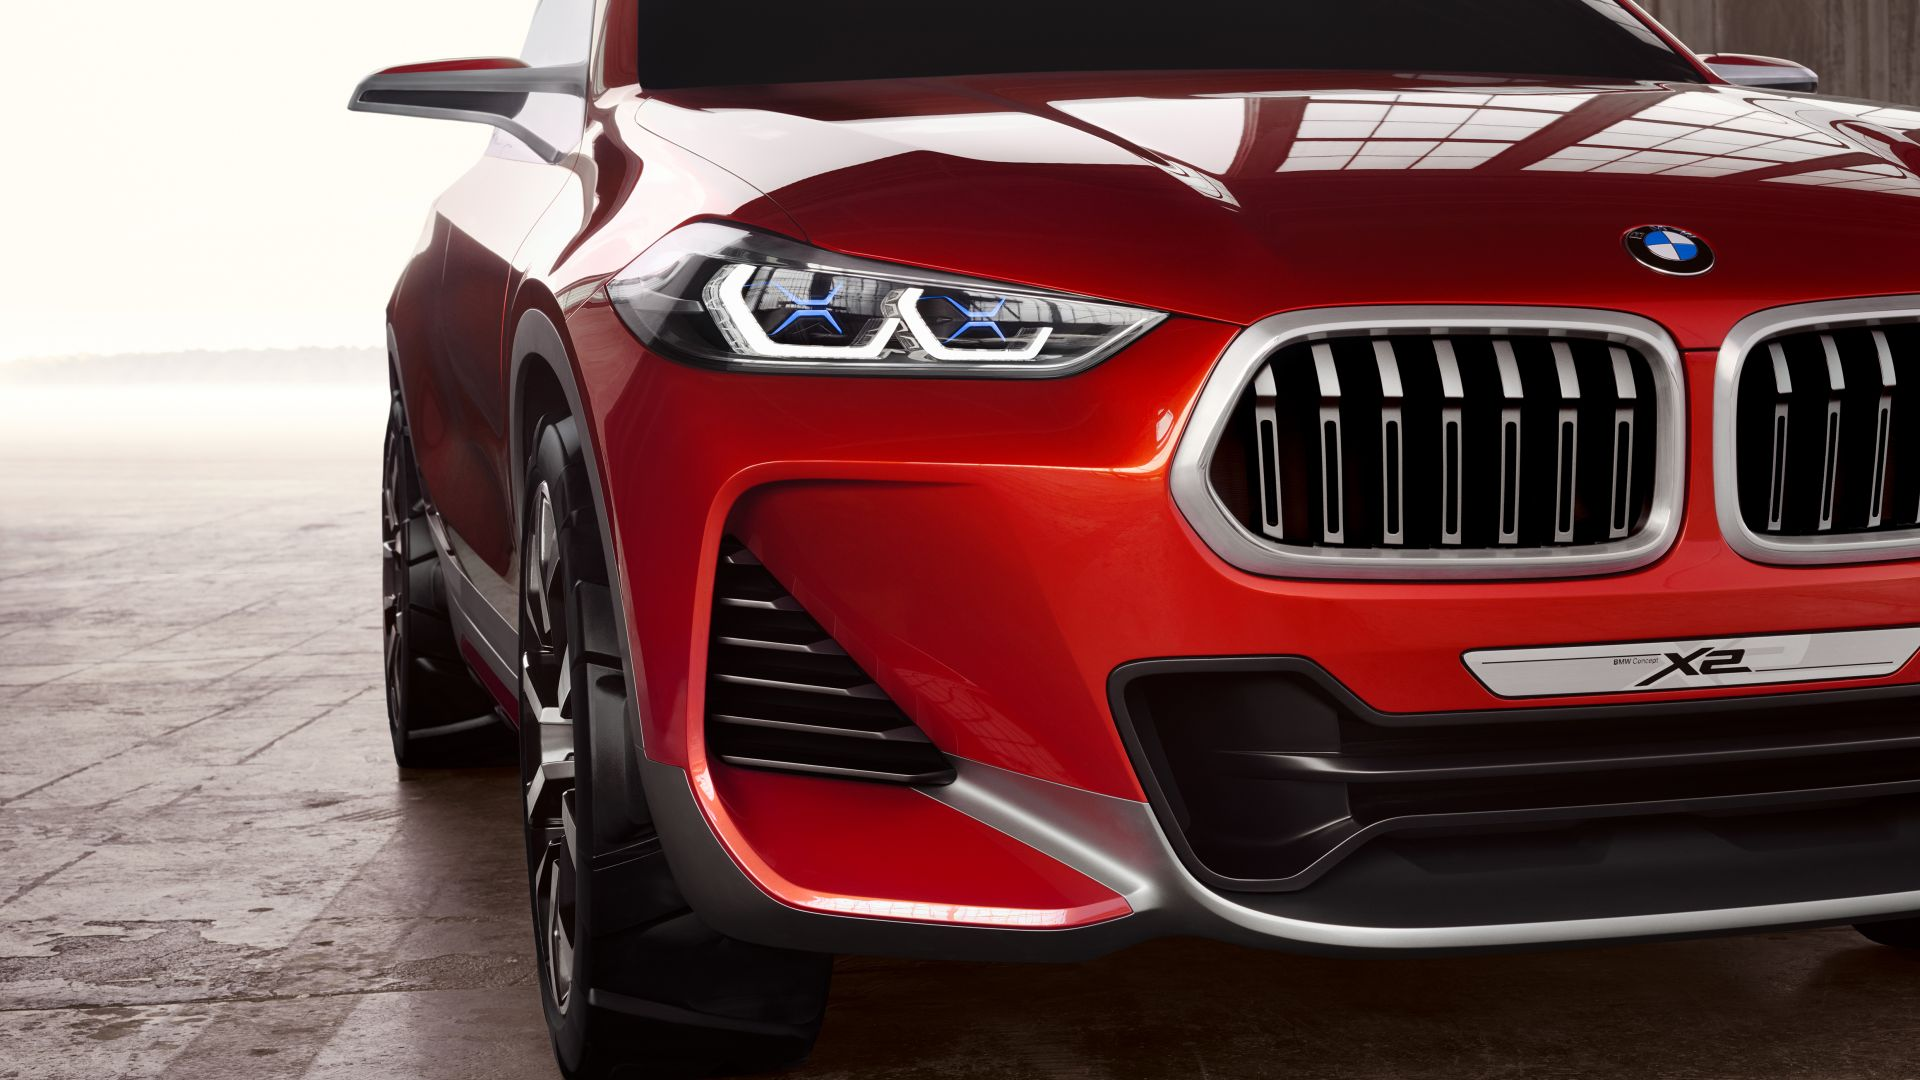 BMW X2, Бмв Икс2, париж авто шоу 2016, BMW X2, paris auto show 2016, crossover (horizontal)